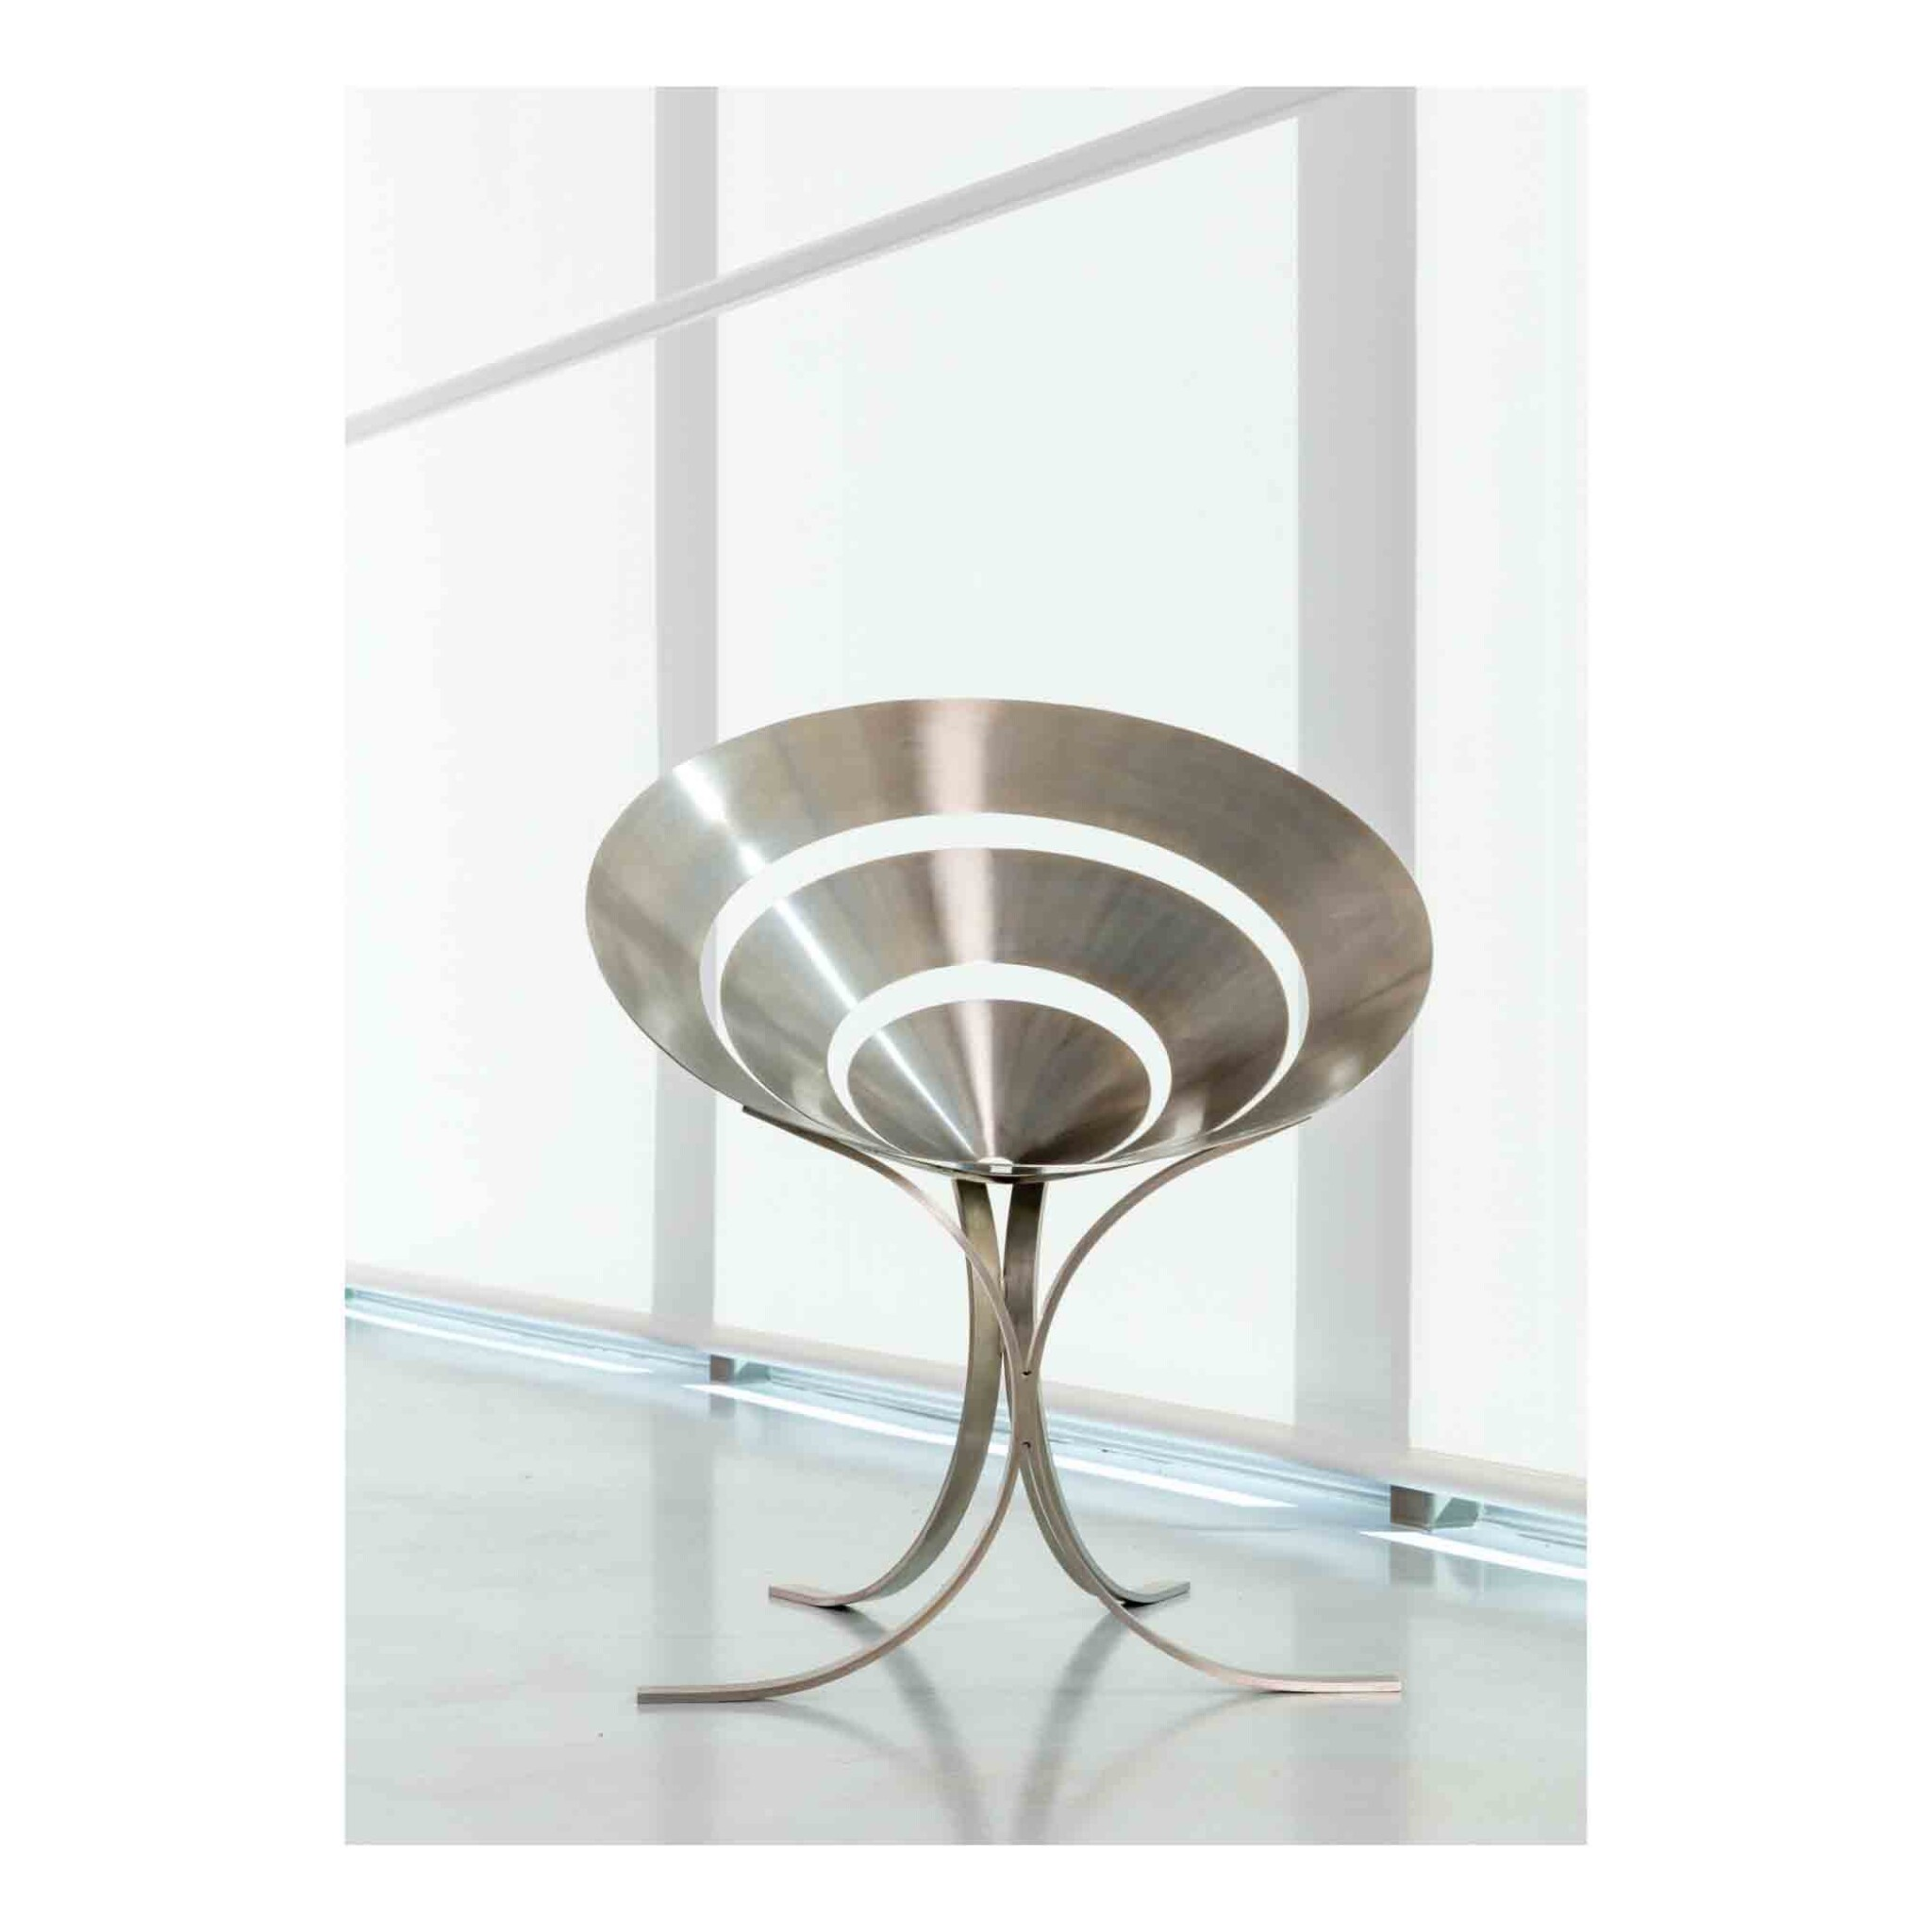 View 1 of Lot 389. Ring Chair.